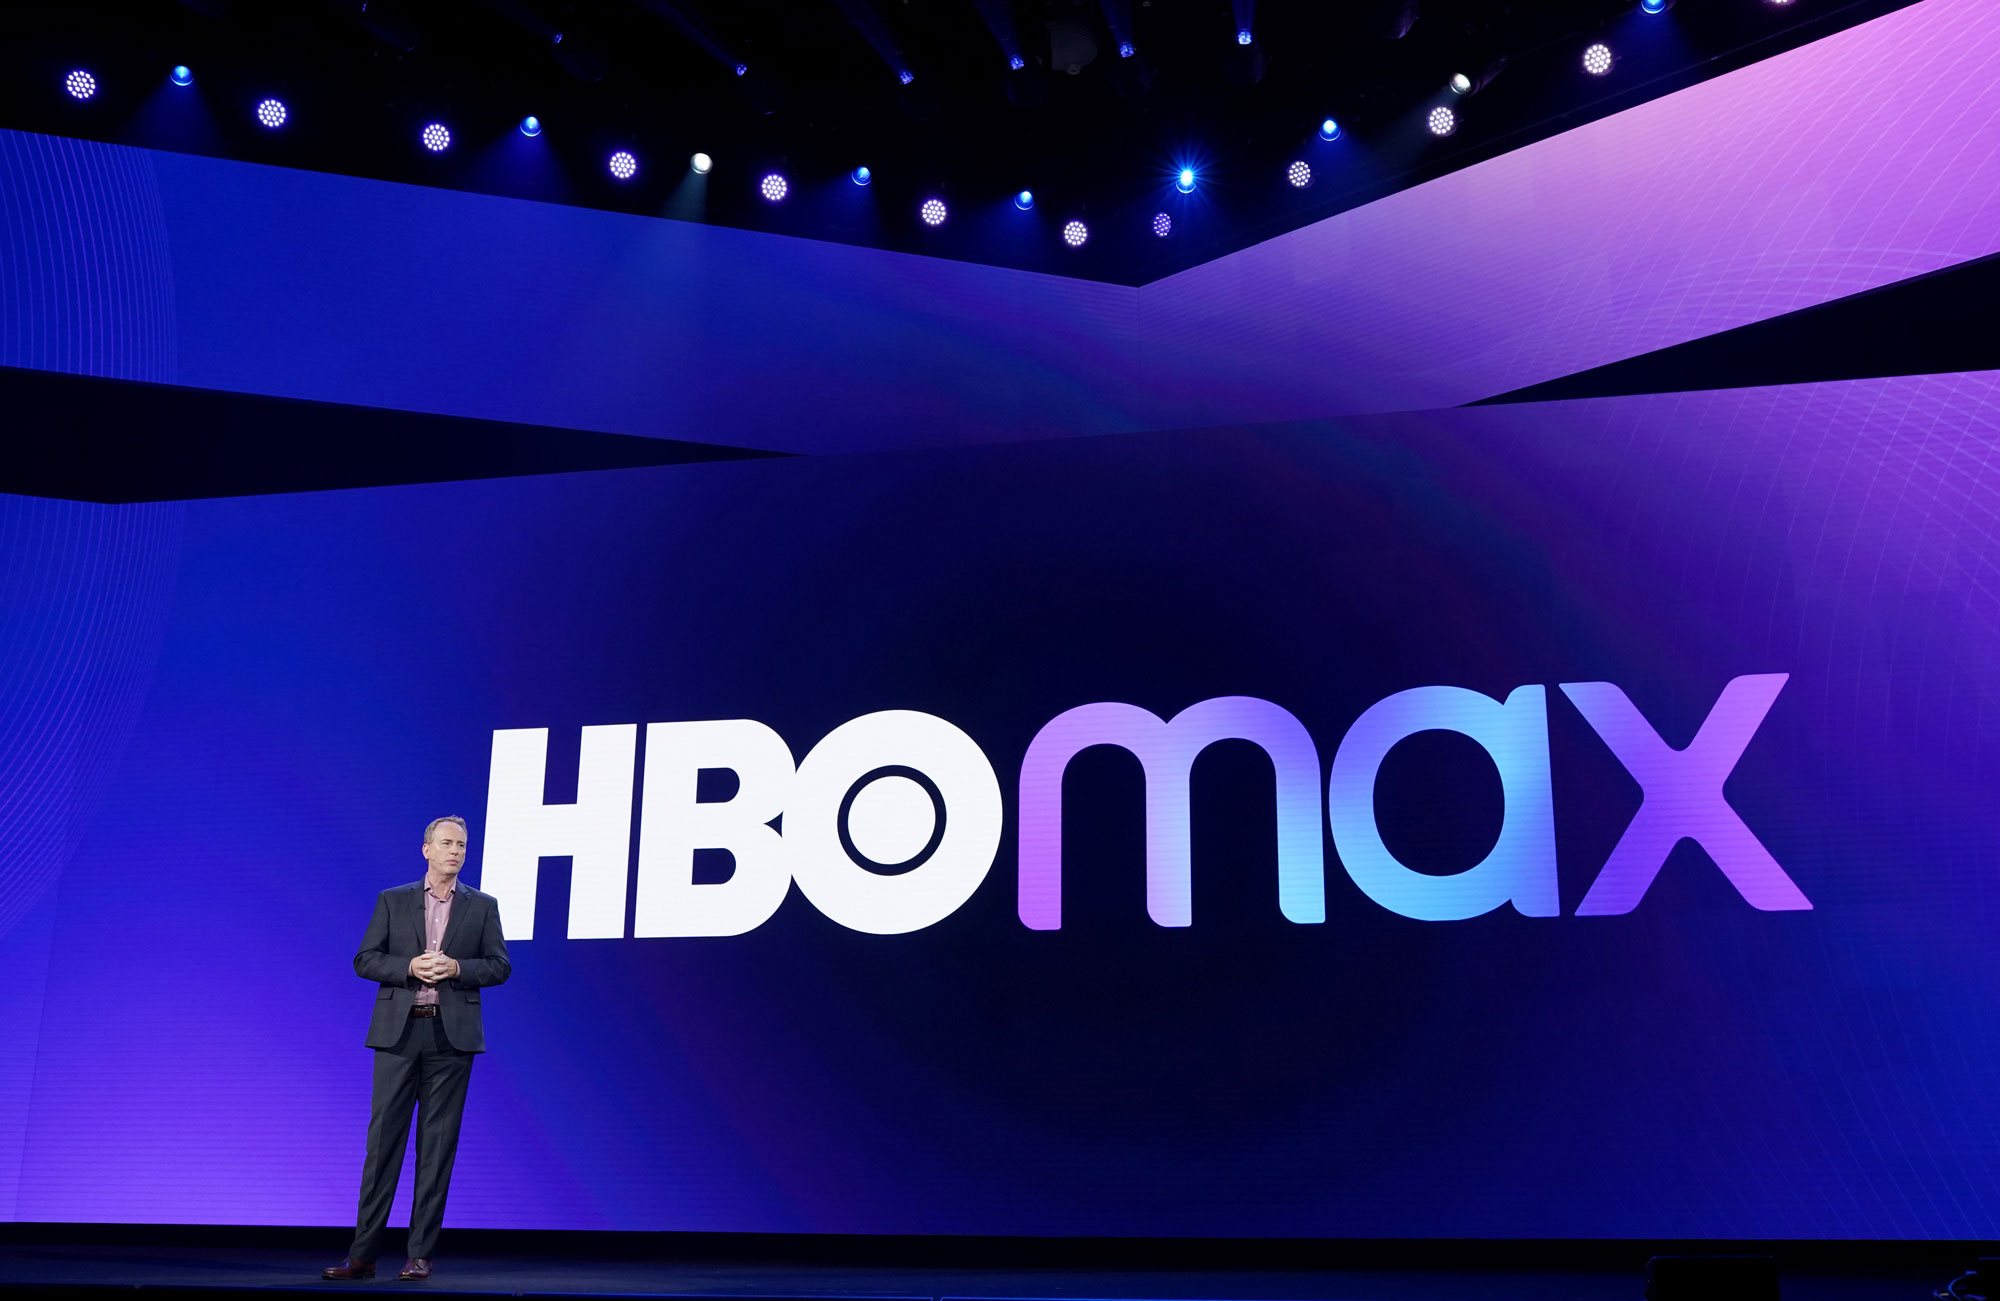 HBO Max chief on launching the new service during a pandemic